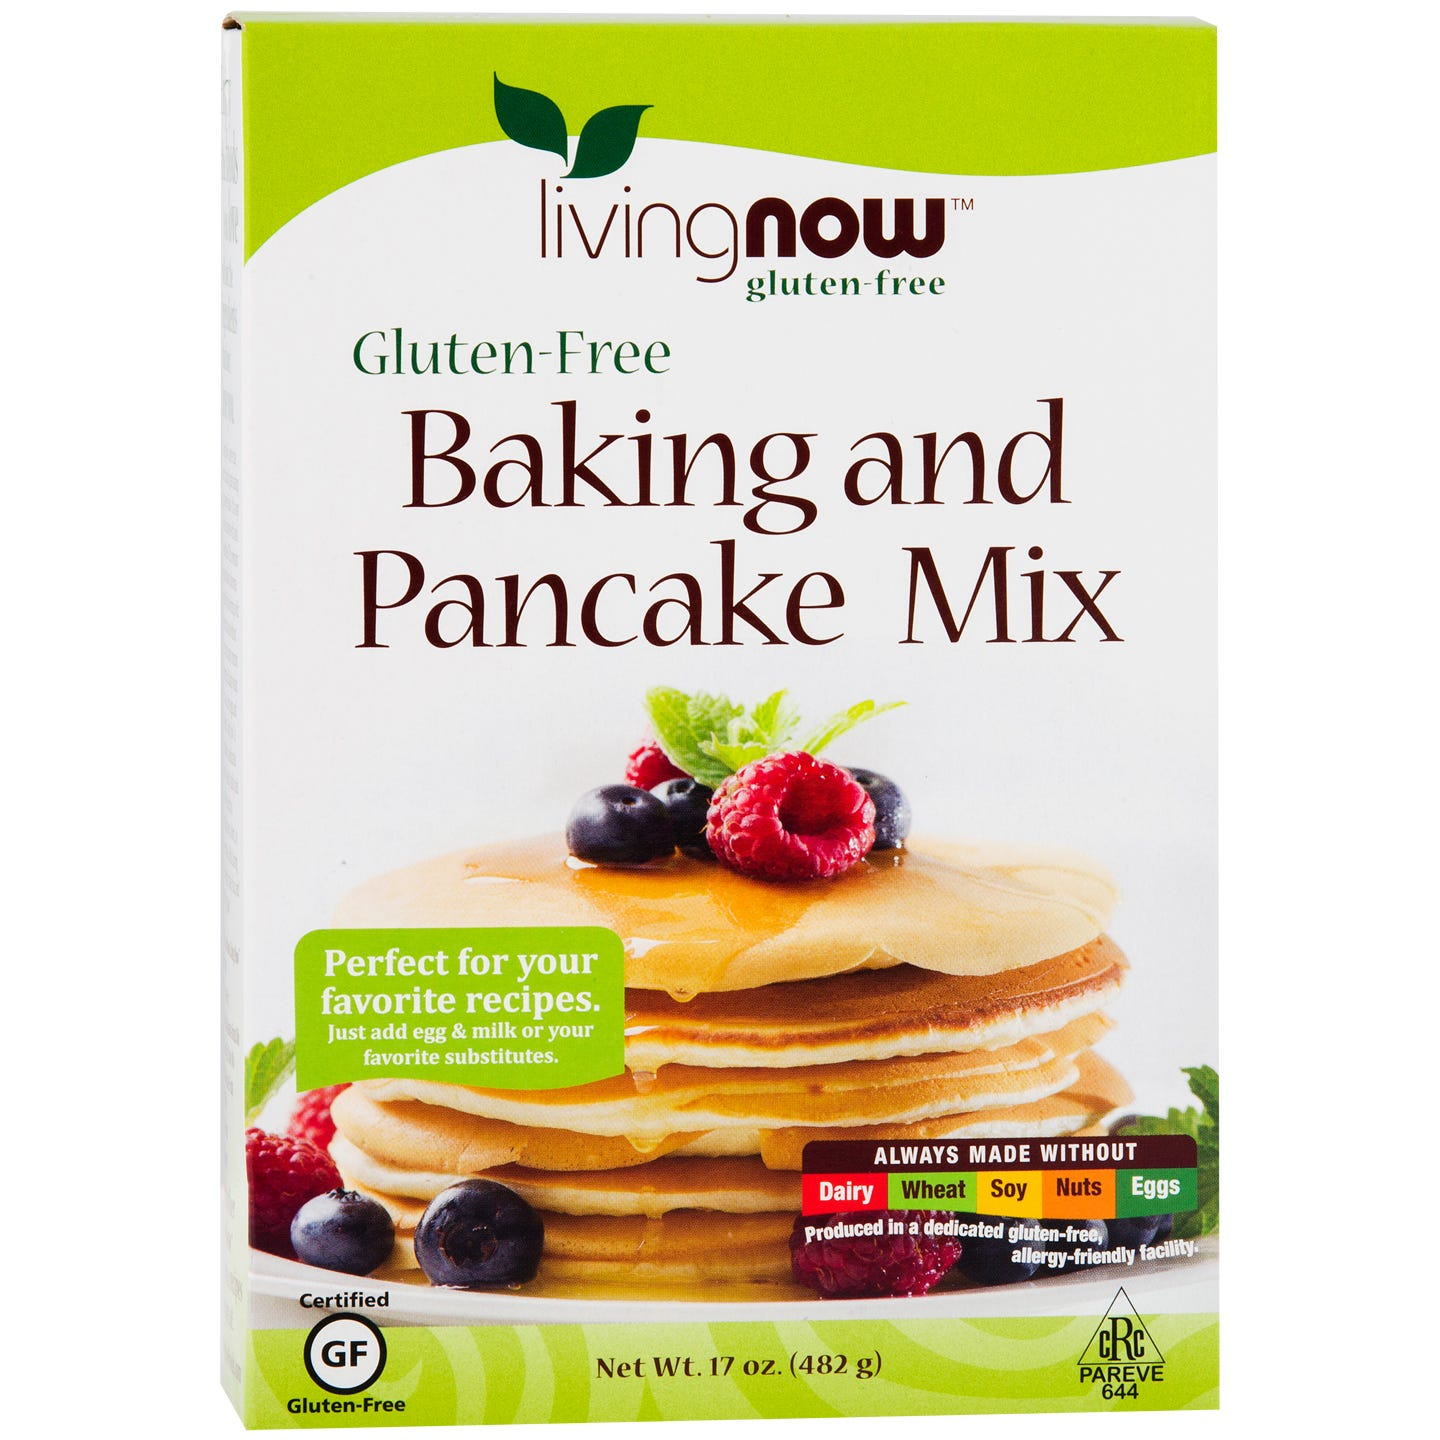 Living Now Gluten Free Baking and Pancake Mix 17oz, NOW Foods - Rapid Diet Weight Loss Products Shop